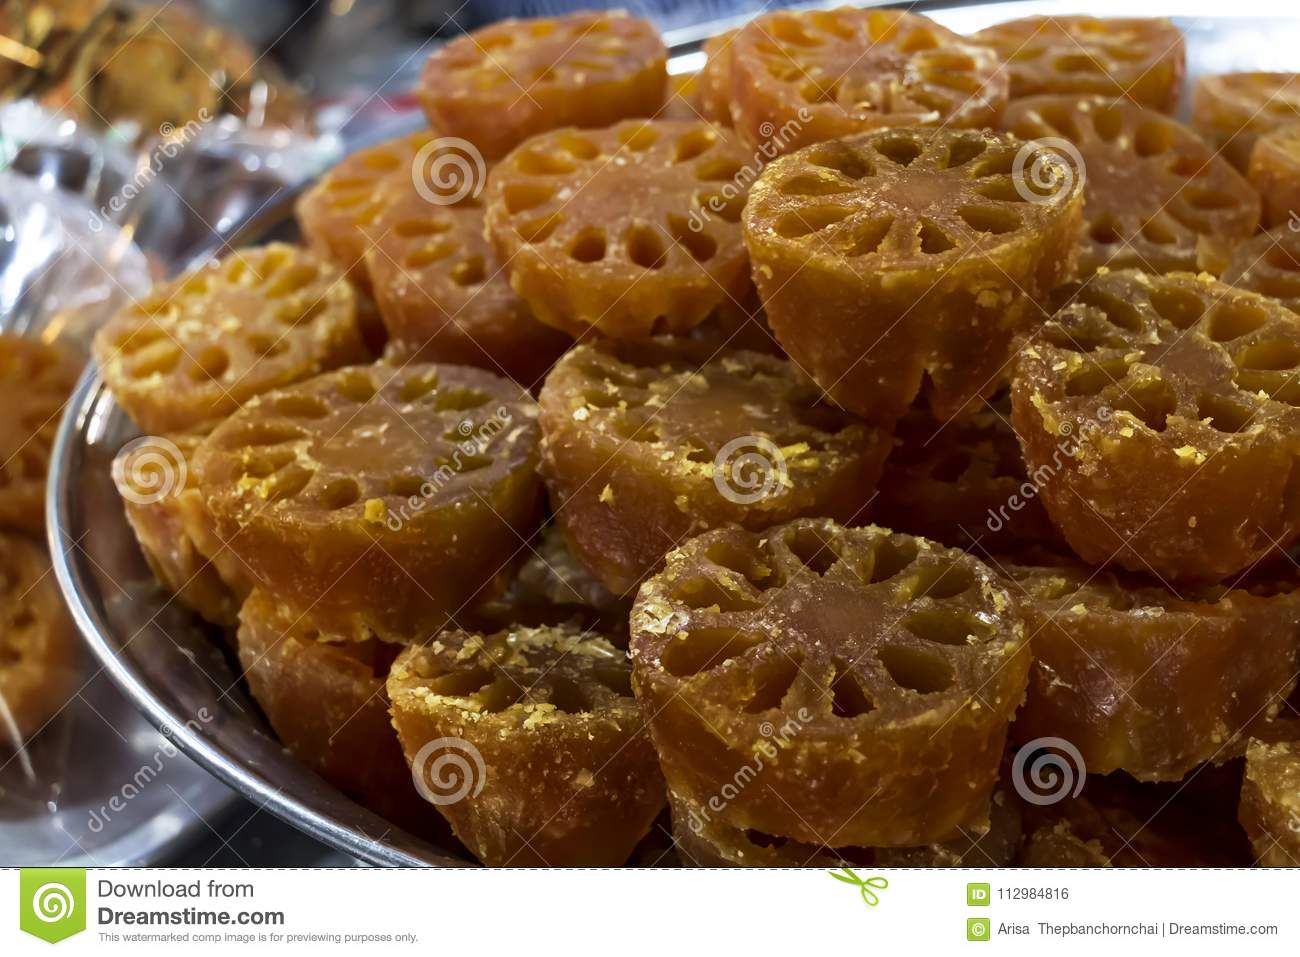 Bael fruit or Aegle marmelos preserved by sweet syrup on contain